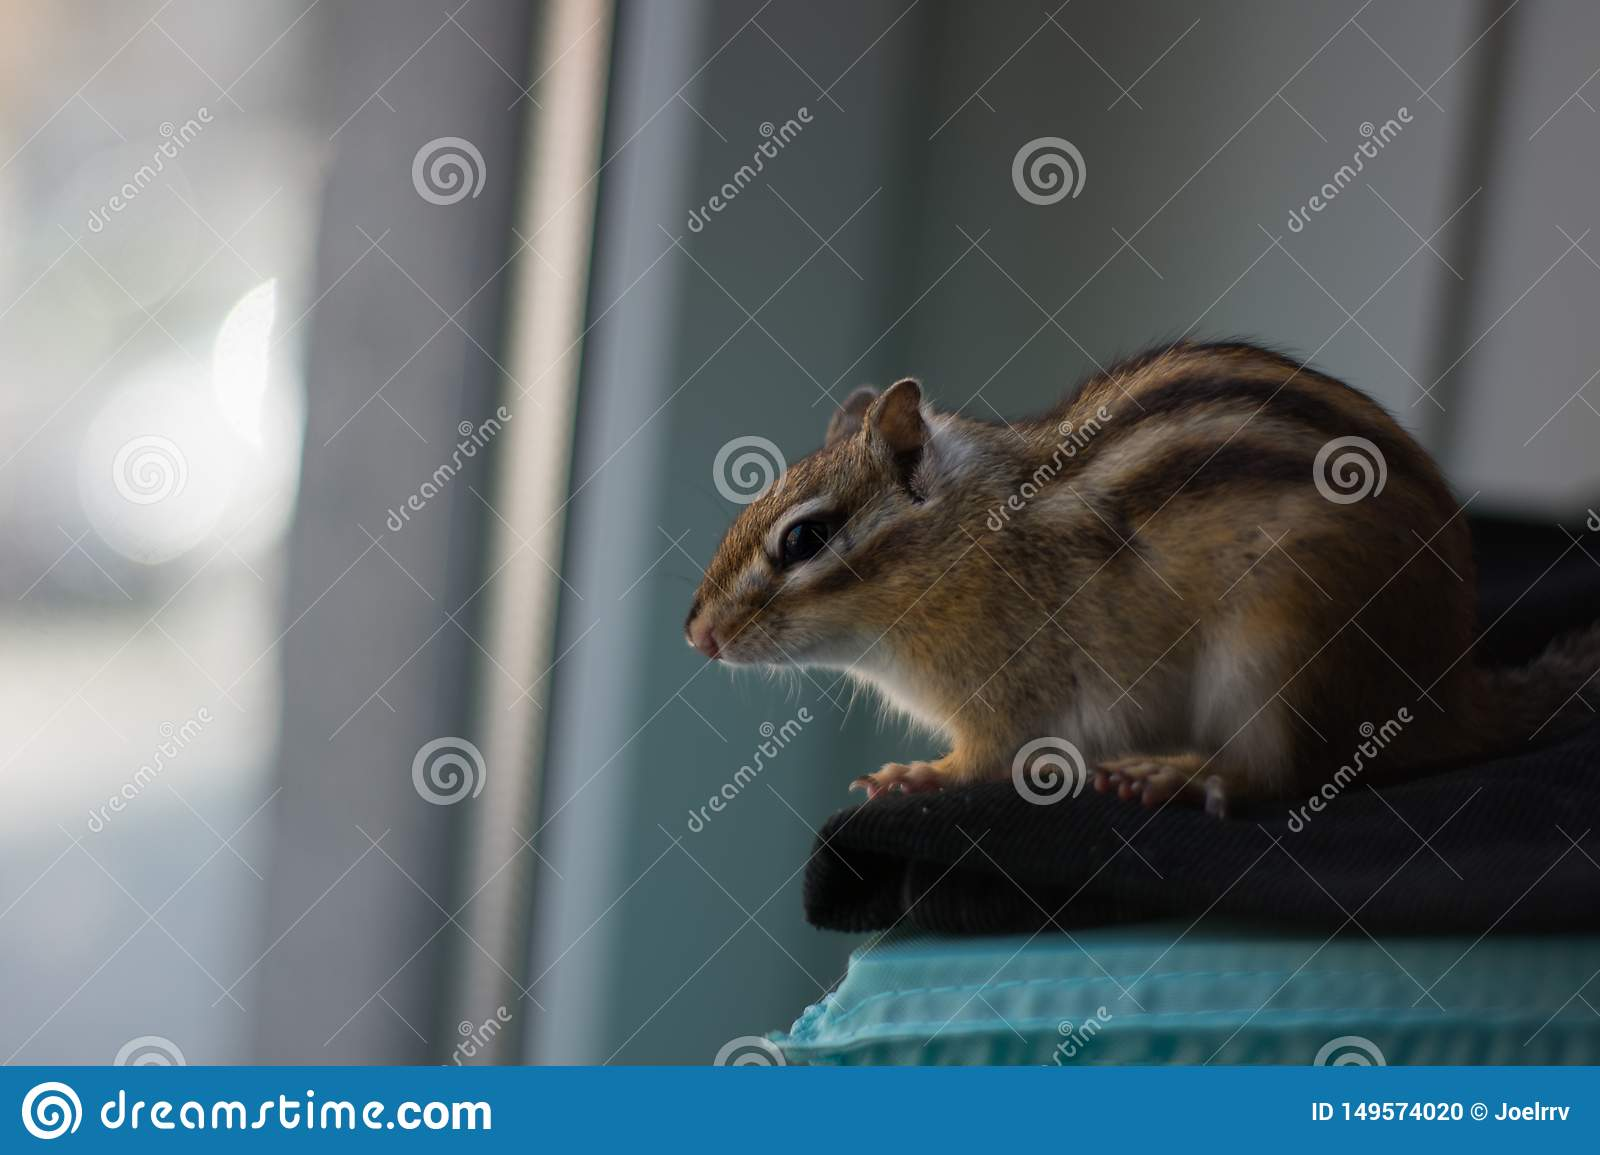 Chipmunk staring out of window